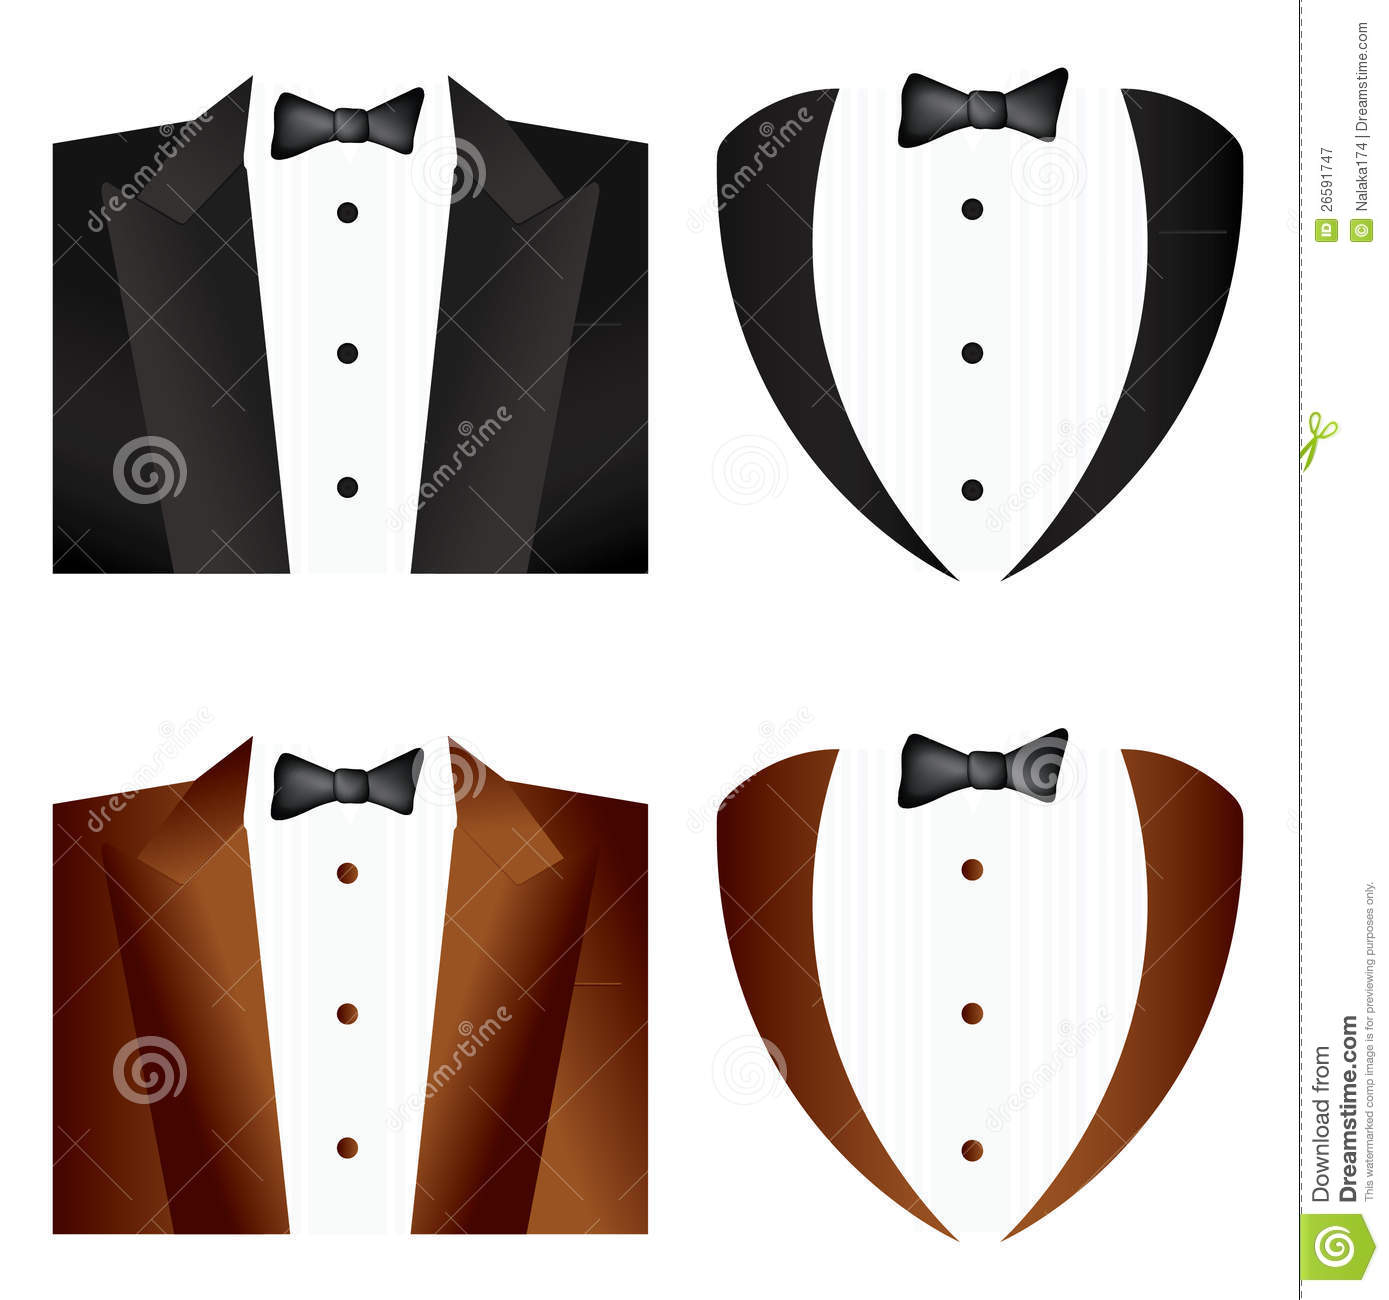 Free Stock Photography  Black And Brown Tie Tuxedo  Image  26591747